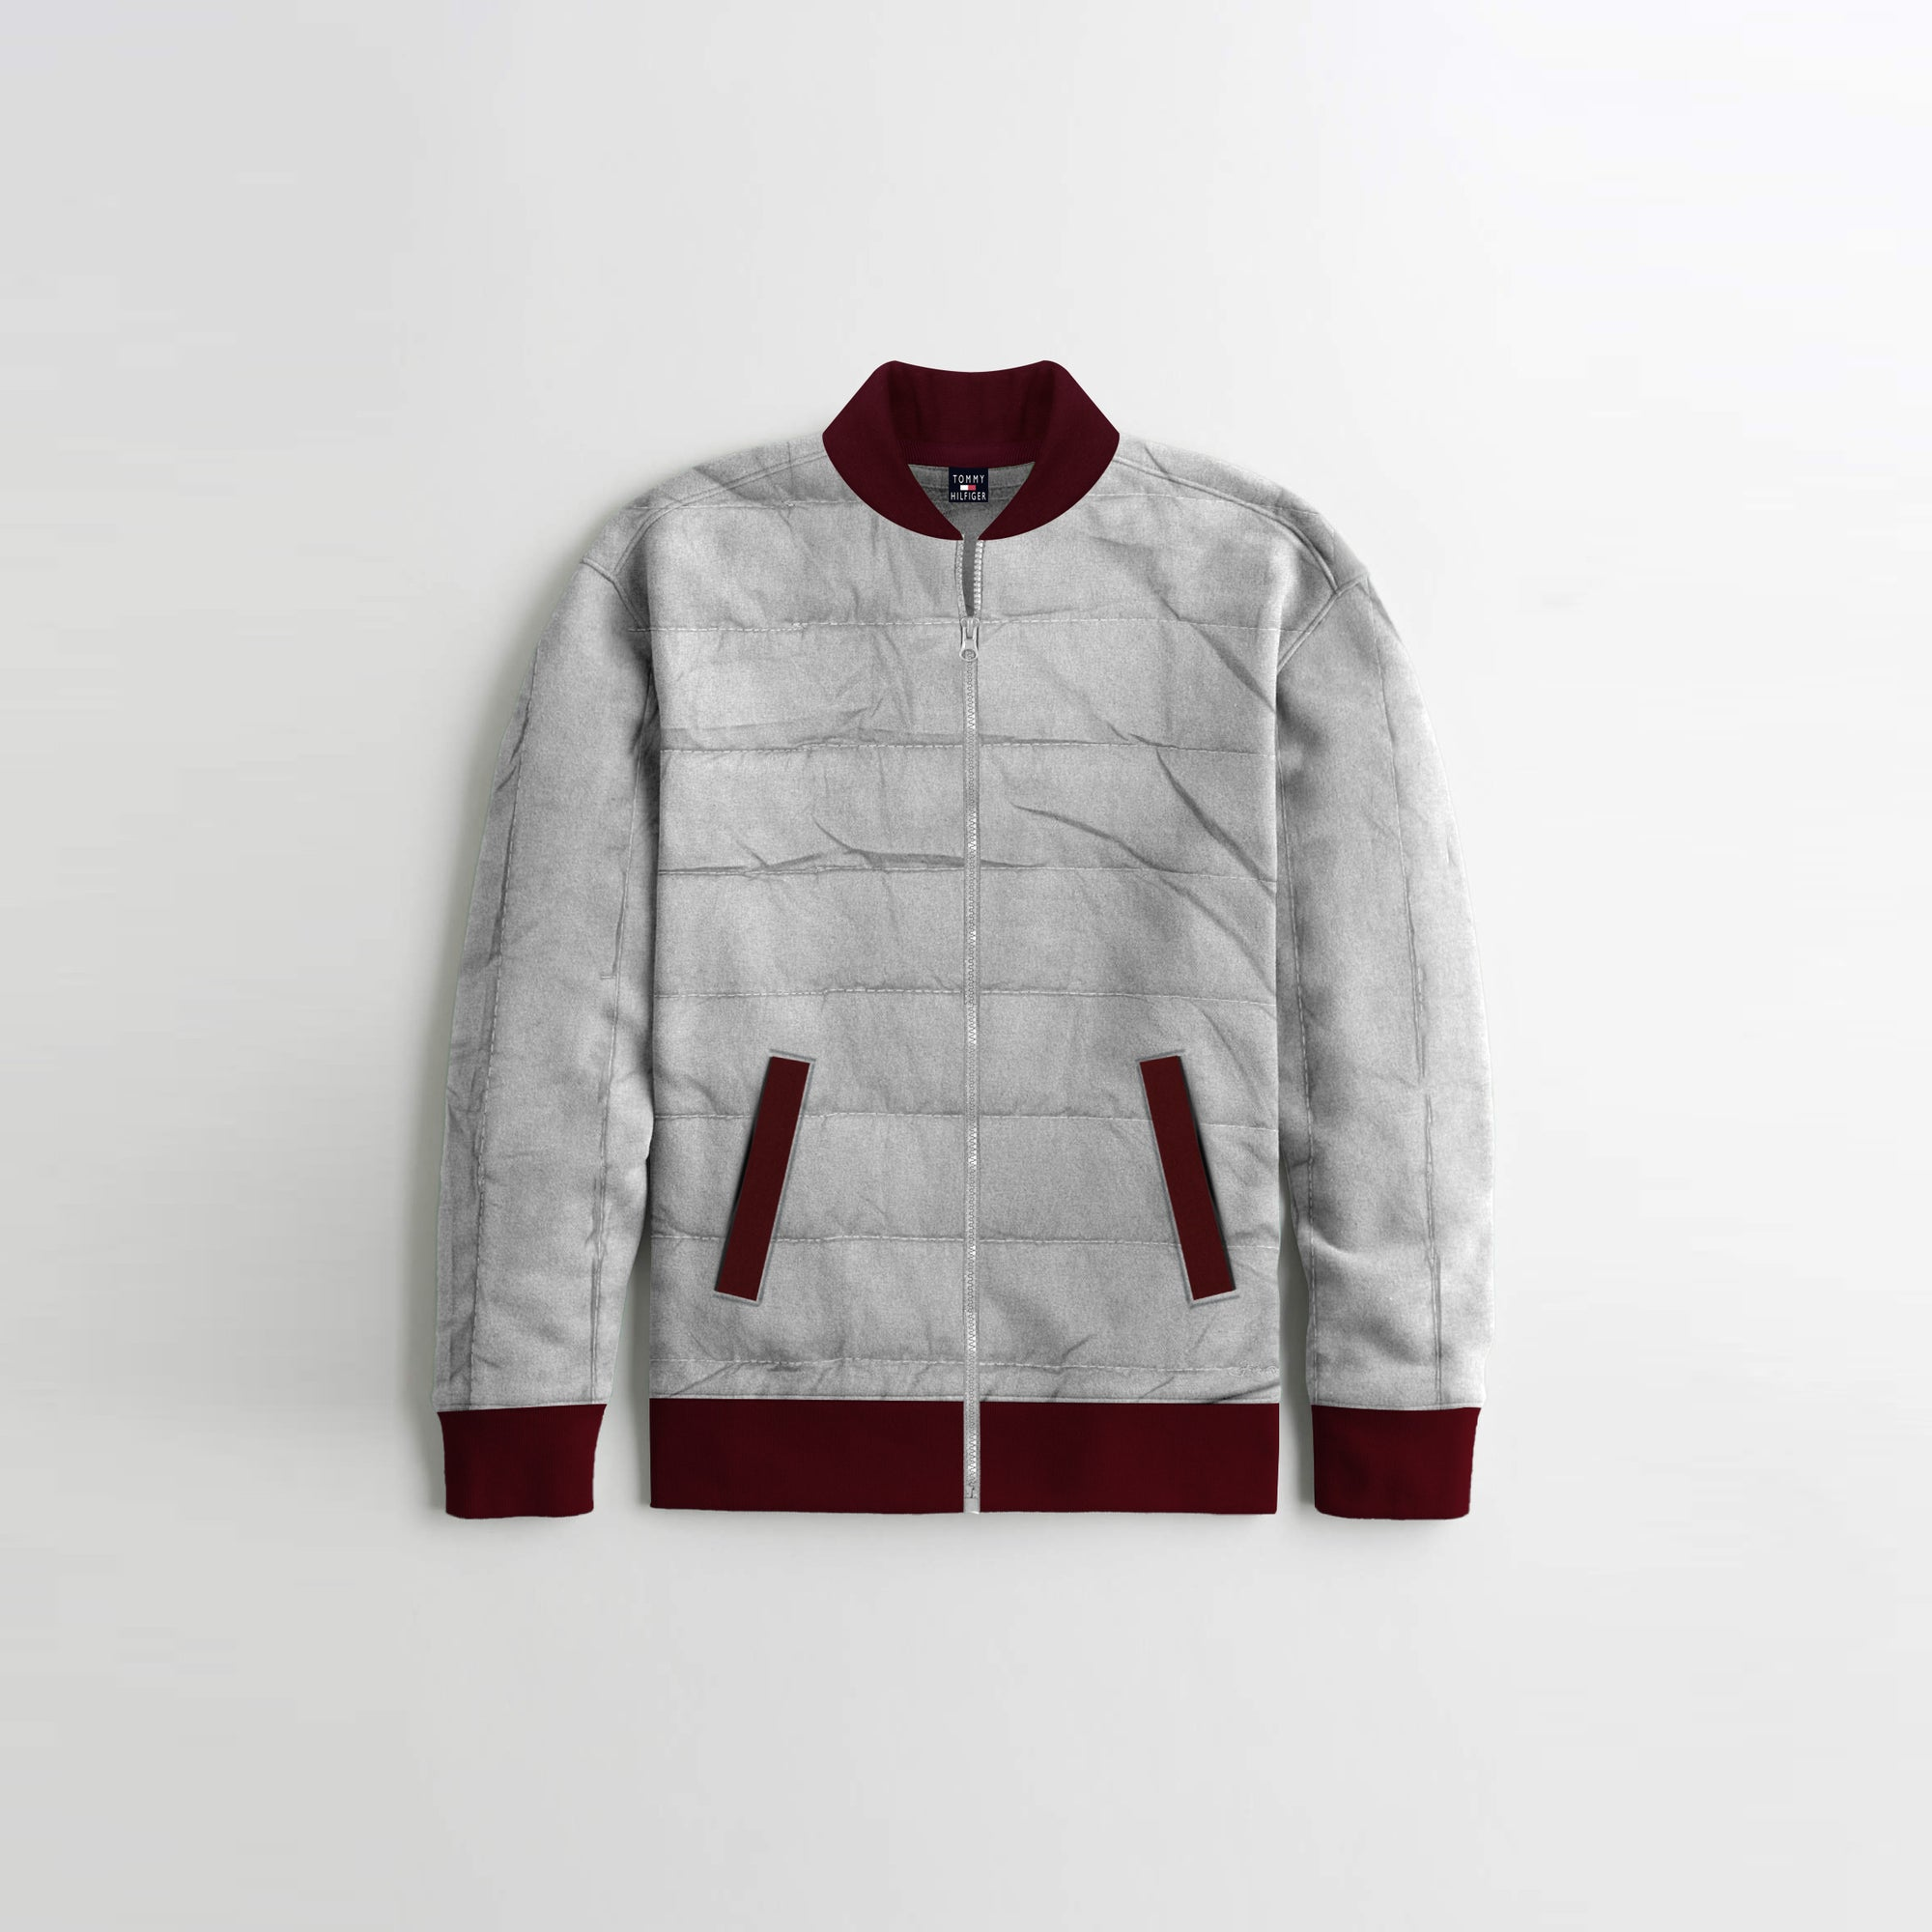 TH Quilted Zipper Baseball Jacket For Kids-Light Grey With Maroon Contrast-NA12122